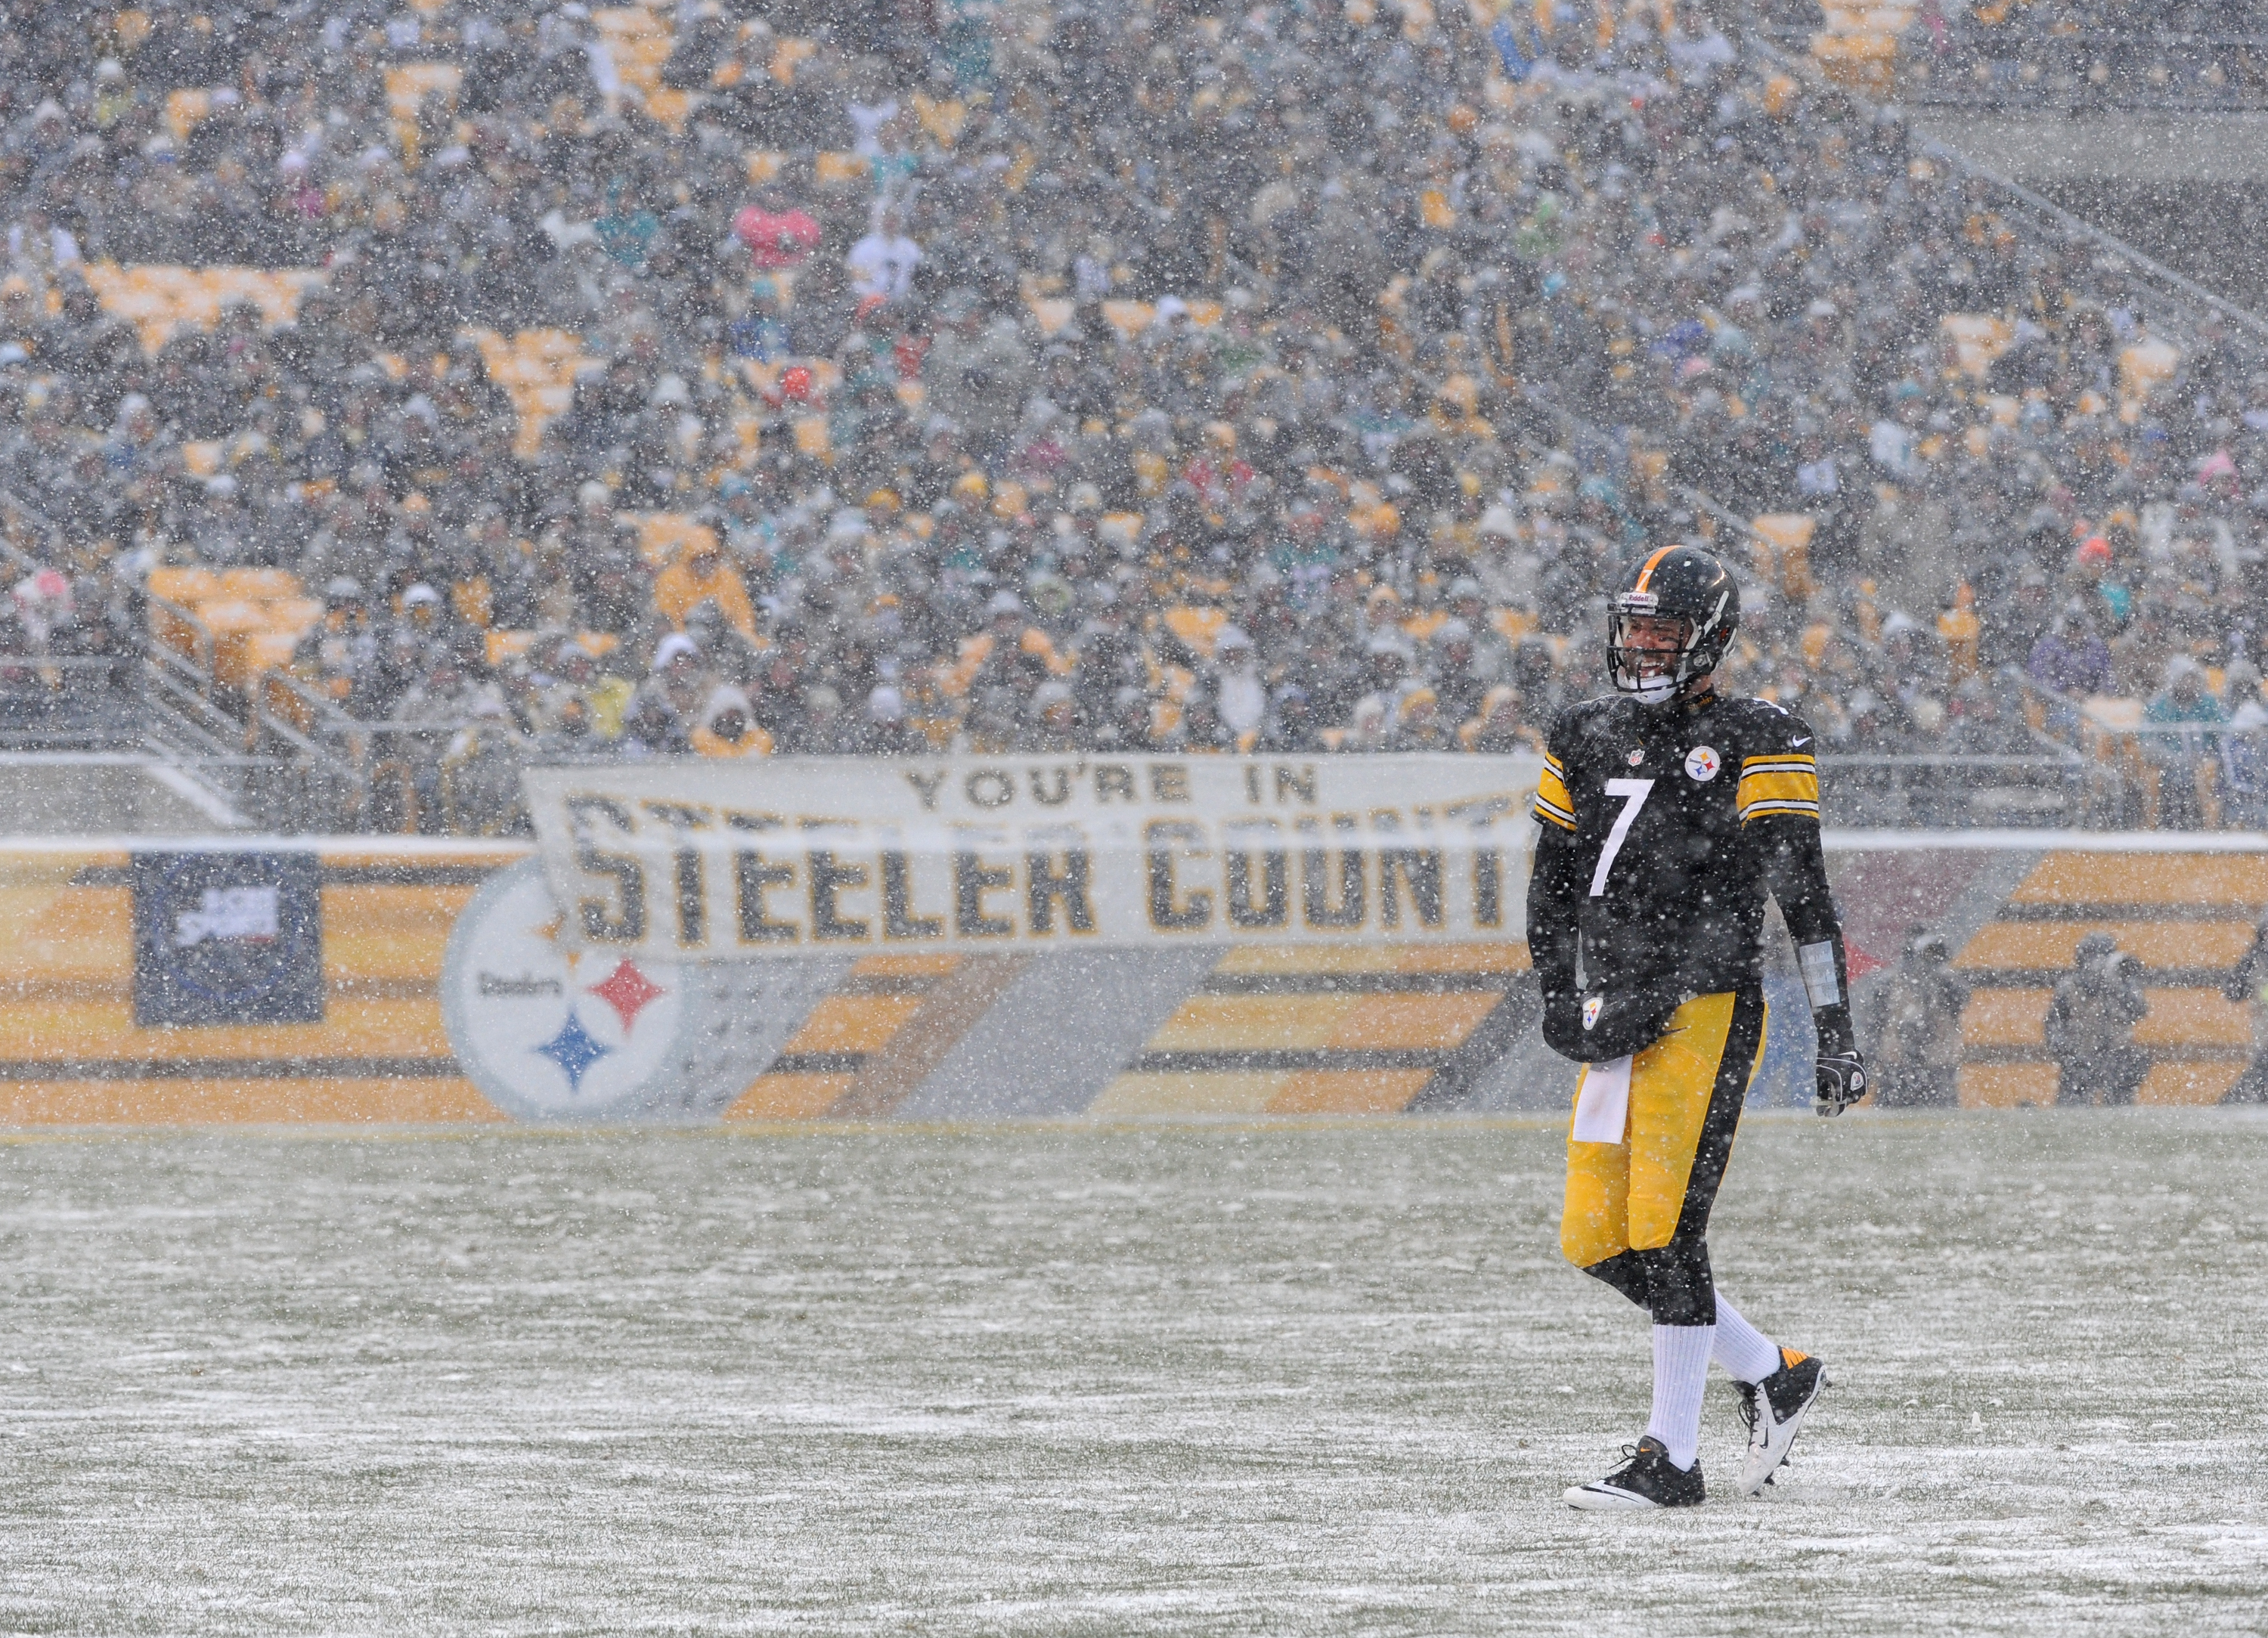 PITTSBURGH, PA - DECEMBER 8: Quarterback Ben Roethlisberger